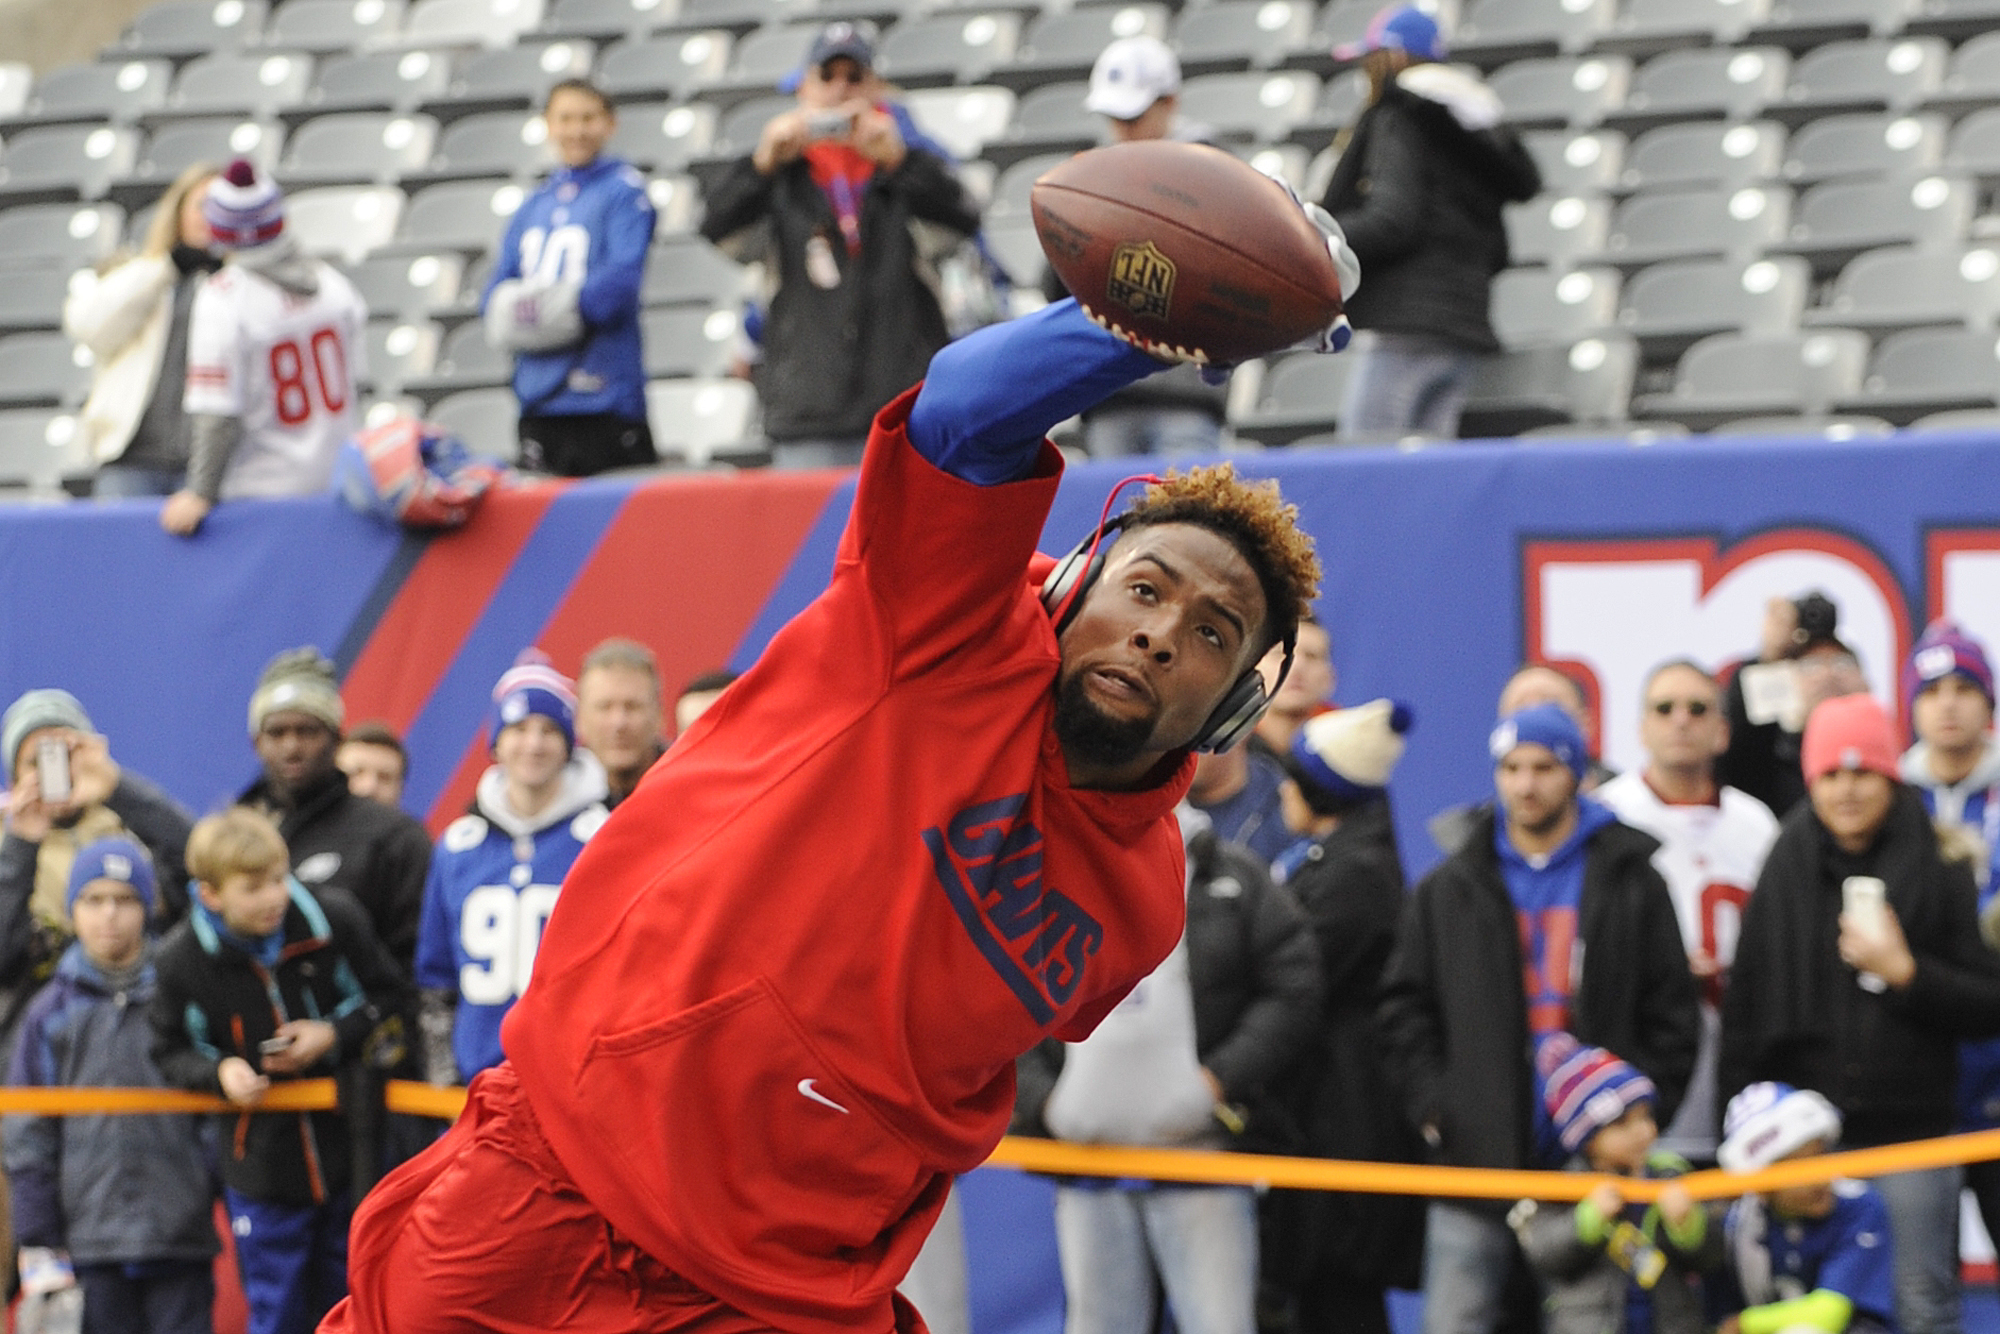 New York Giants' Odell Beckham catches a pass as he warms up before an NFL football game against the Philadelphia Eagles Sunday, Dec. 28, 2014, in East Rutherford.  (AP Photo/Bill Kostroun)